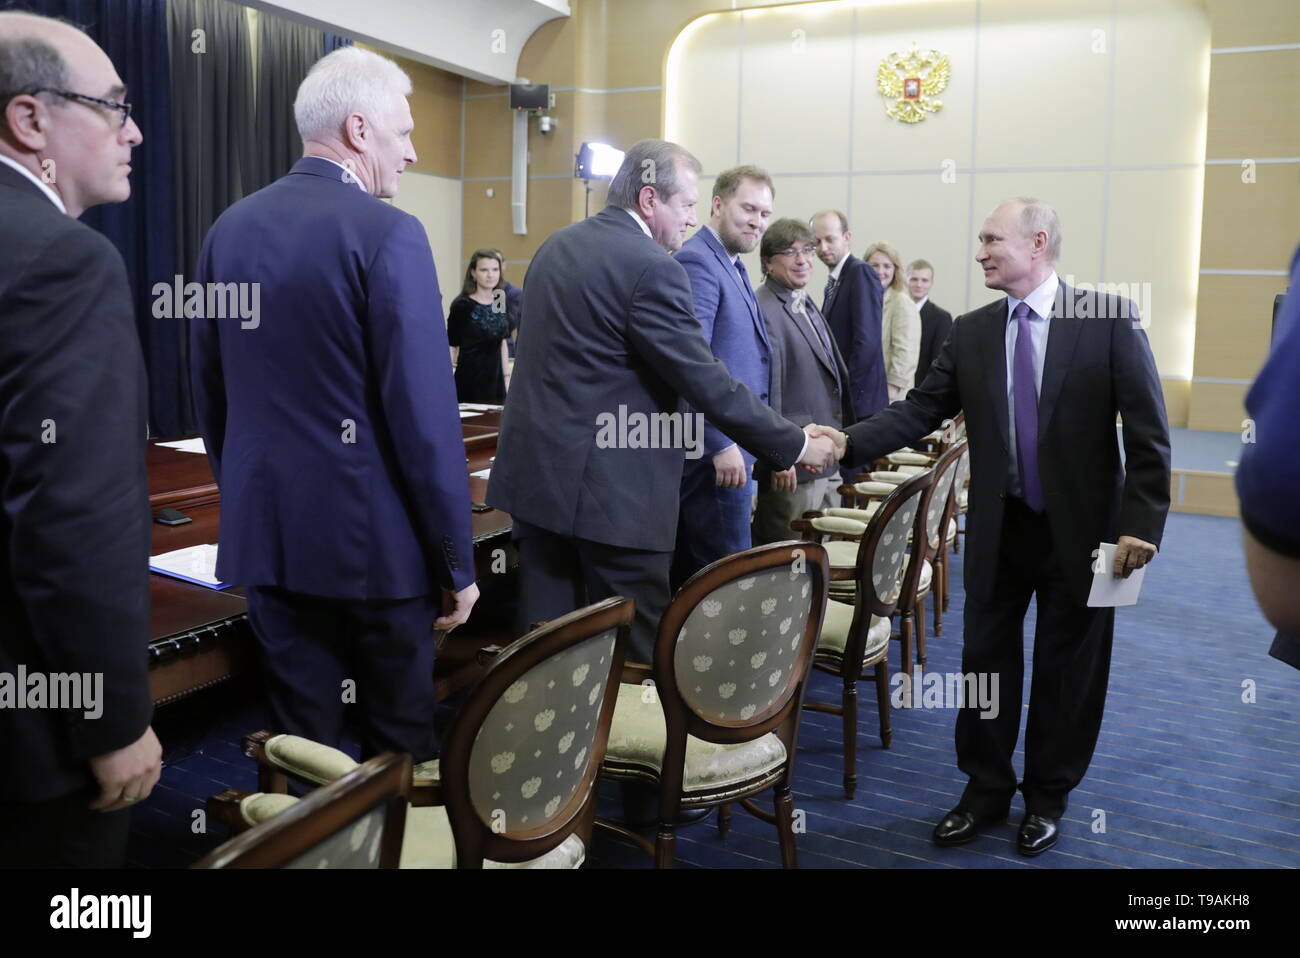 Sochi, Russia. 17th May, 2019. SOCHI, RUSSIA - MAY 17, 2019: Alexander Kabanov, an honoured professor at the University of North Carolina (USA), Russian Presidential Aide Andrei Fursenko, Konstantin Krutovsky, professor of Genetics at the University of Gottingen (Germany), Bauman Moscow State Technical University Laboratory head Vladimir Lazarev, and Russia's President Vladimir Putin (L-R) during a meeting with the winners of 'megagrants' for scientific research. Mikhail Metzel/TASS Credit: ITAR-TASS News Agency/Alamy Live News - Stock Image